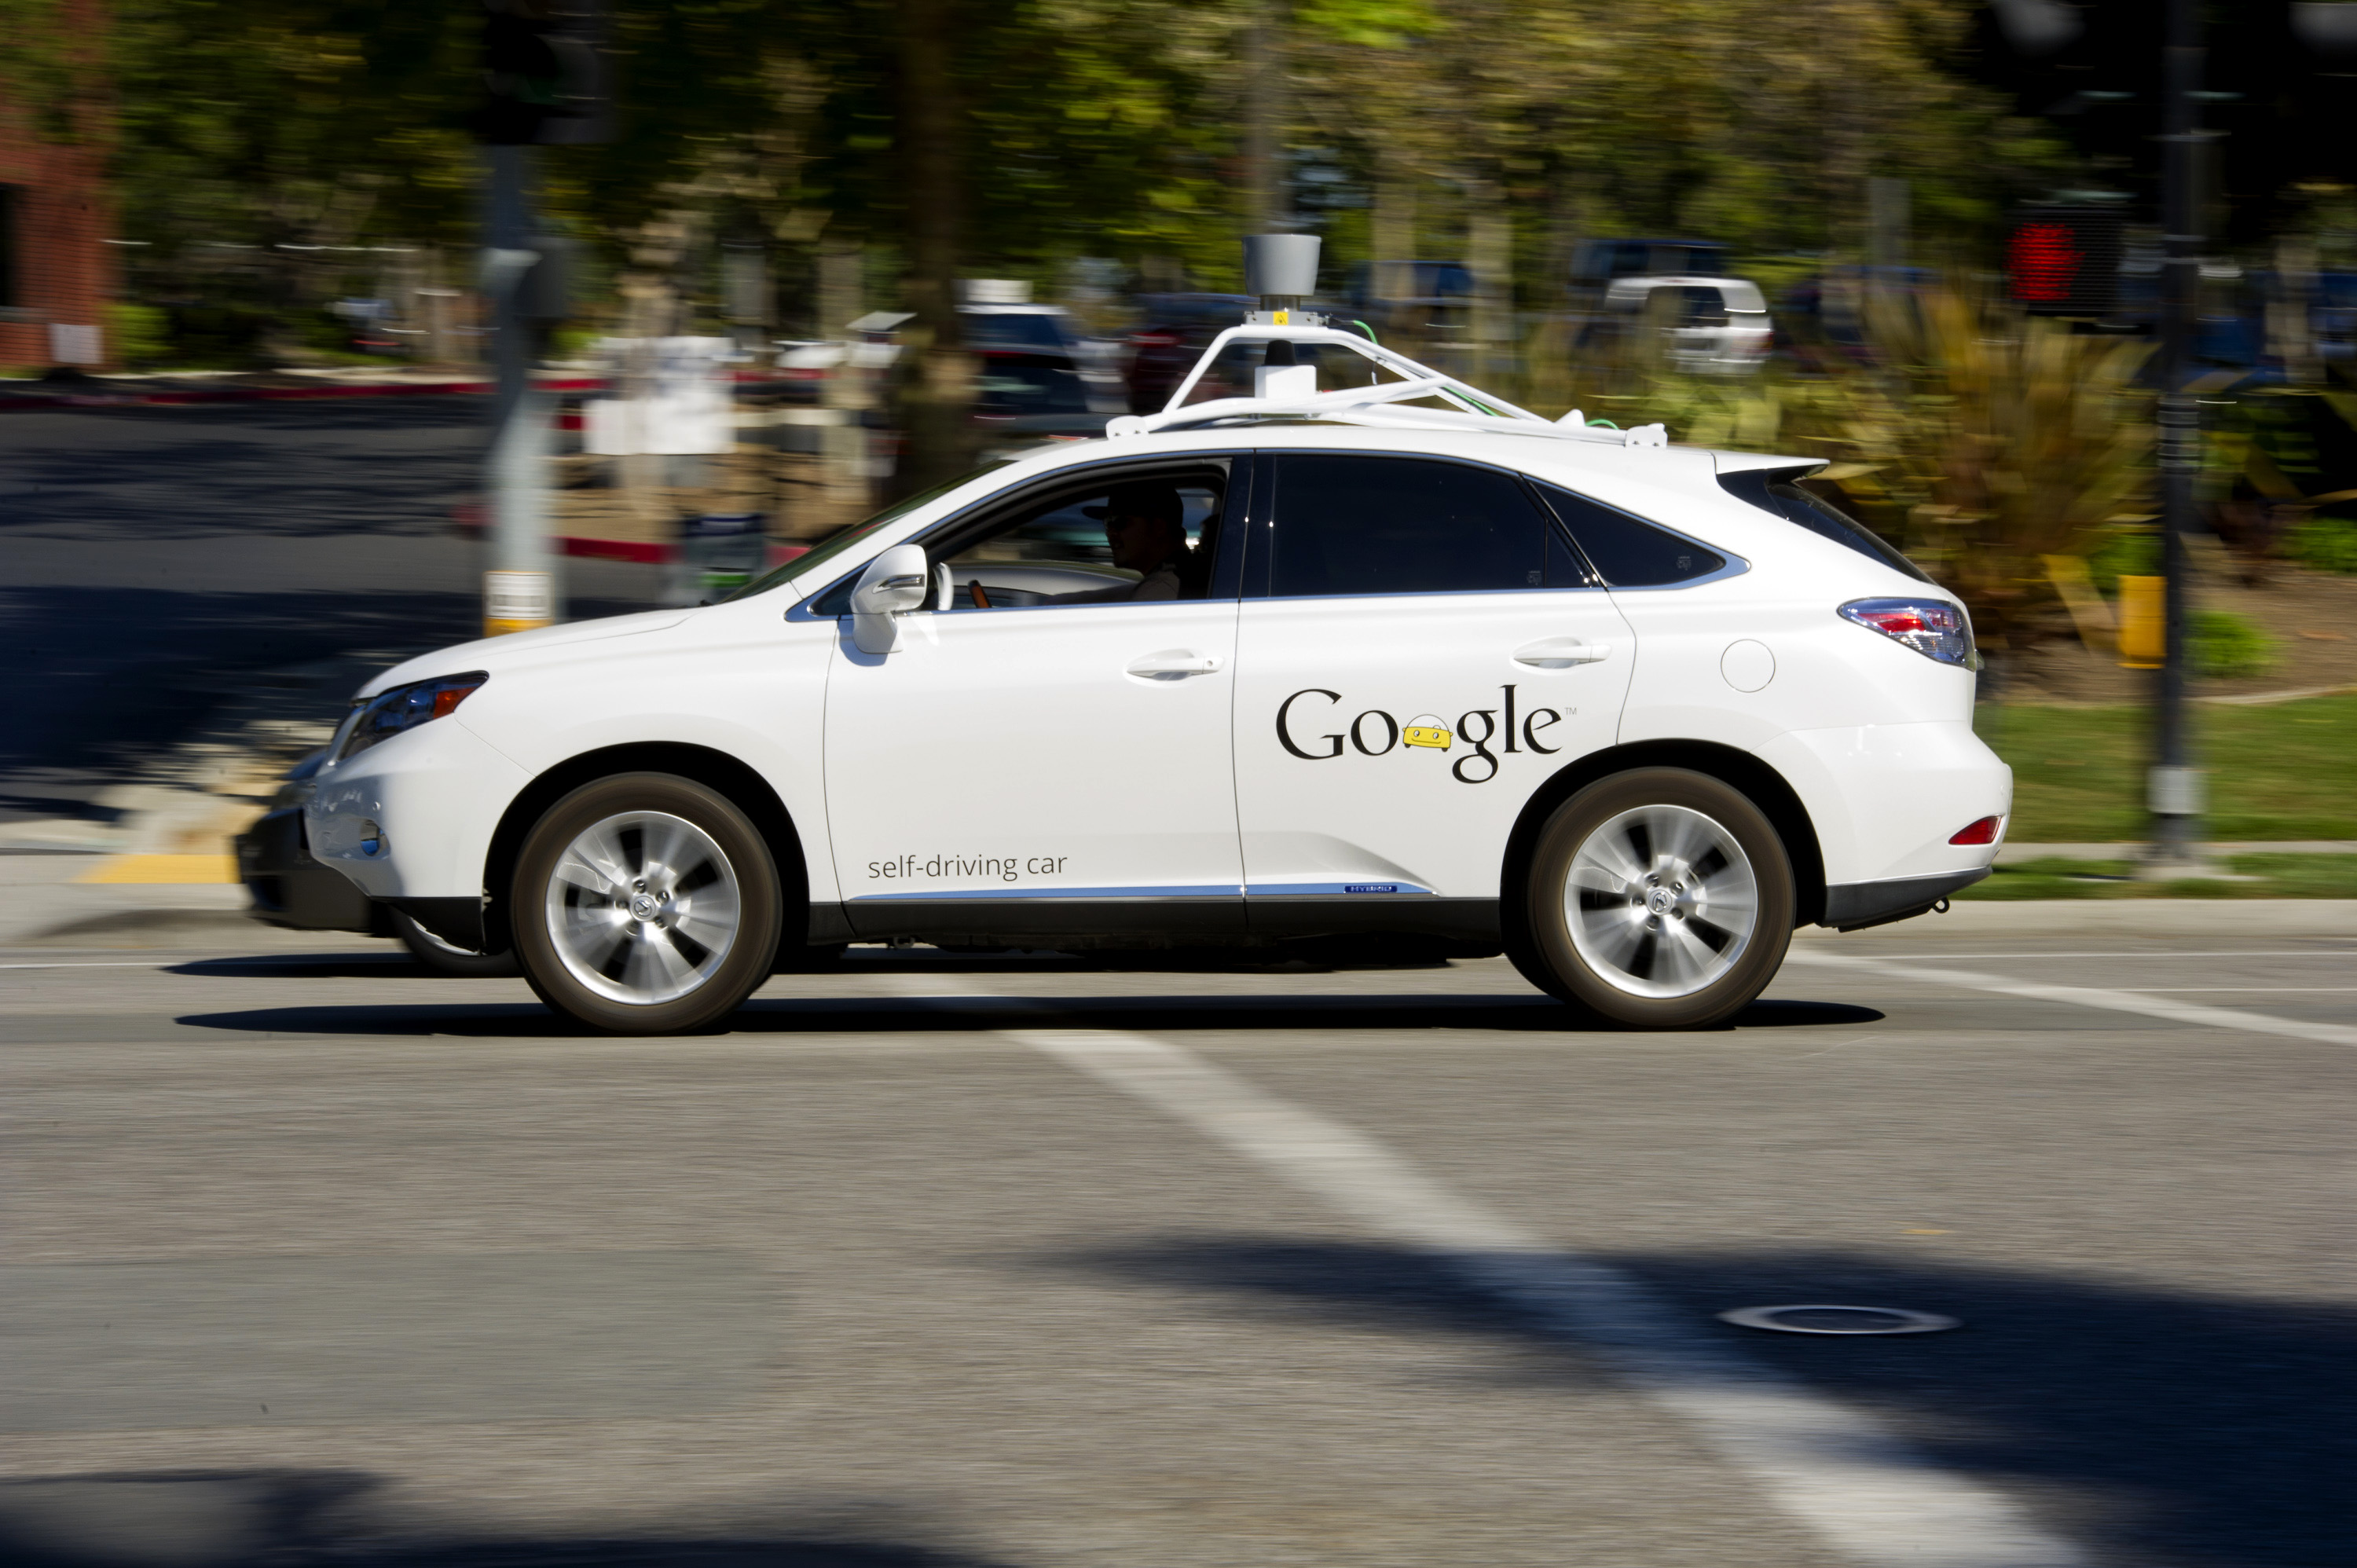 A man drives a Google Inc. self-driving car in front of the company's headquarters in Mountain View, California, U.S.